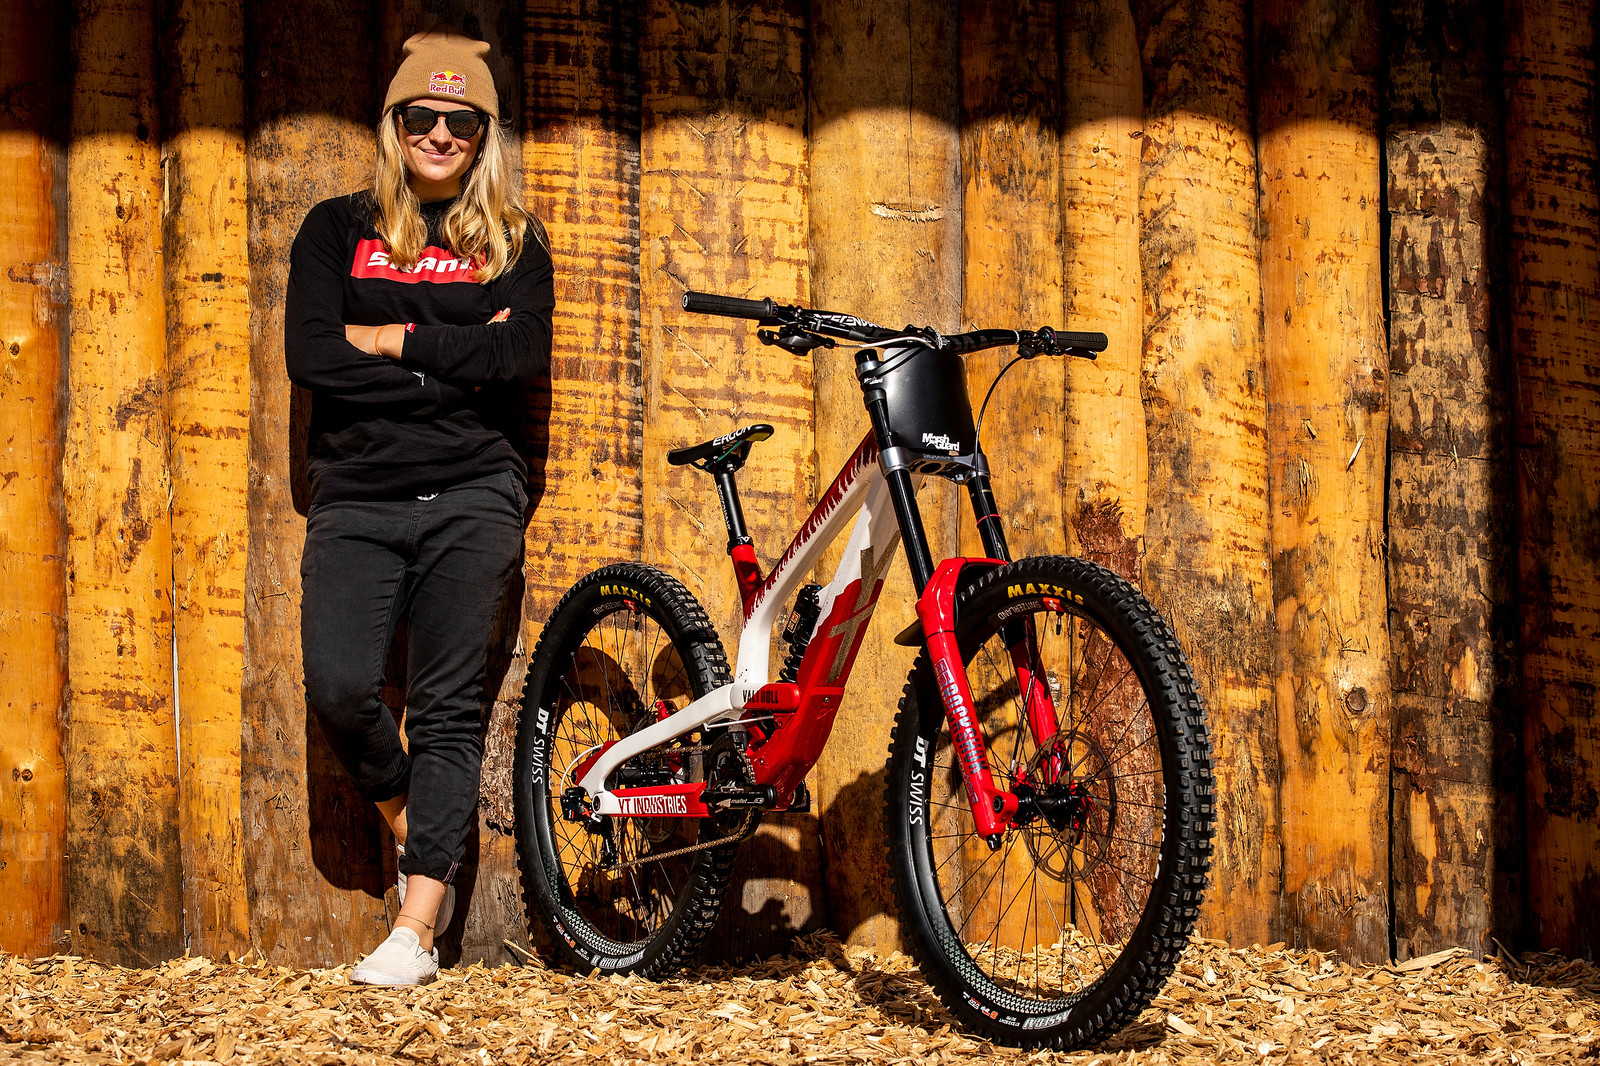 Vali Holl with her World Champs YT TUES - WORLD CHAMPS BIKE - Vali Holl's YT TUES - Mountain Biking Pictures - Vital MTB